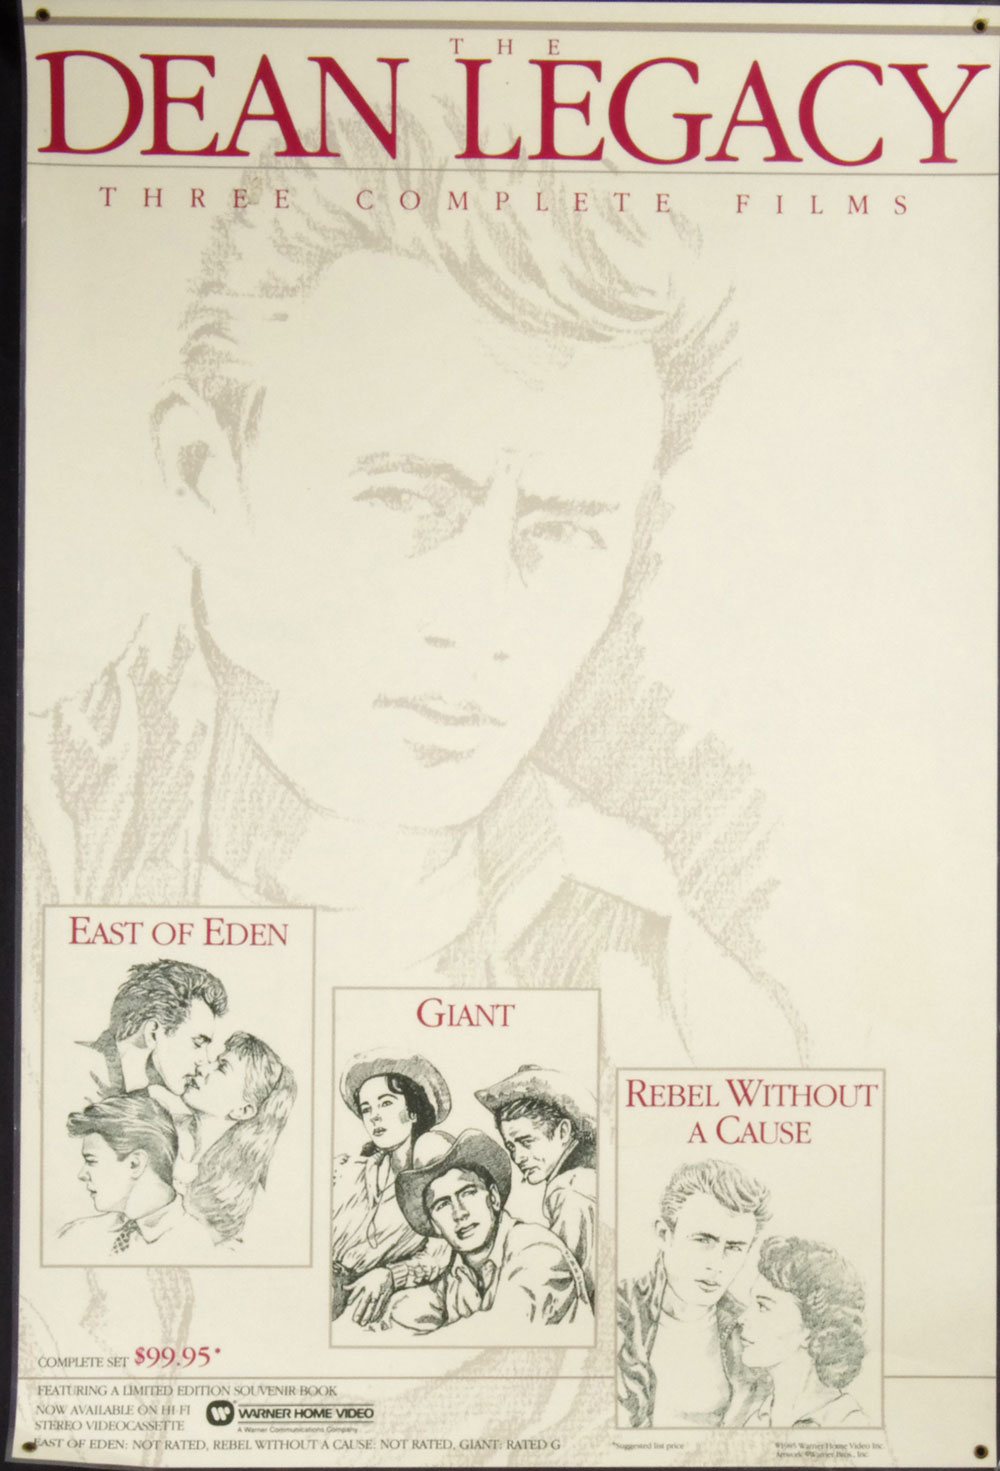 James Dean Poster 1985 The Dean Legacy Home Video Promo Laminated